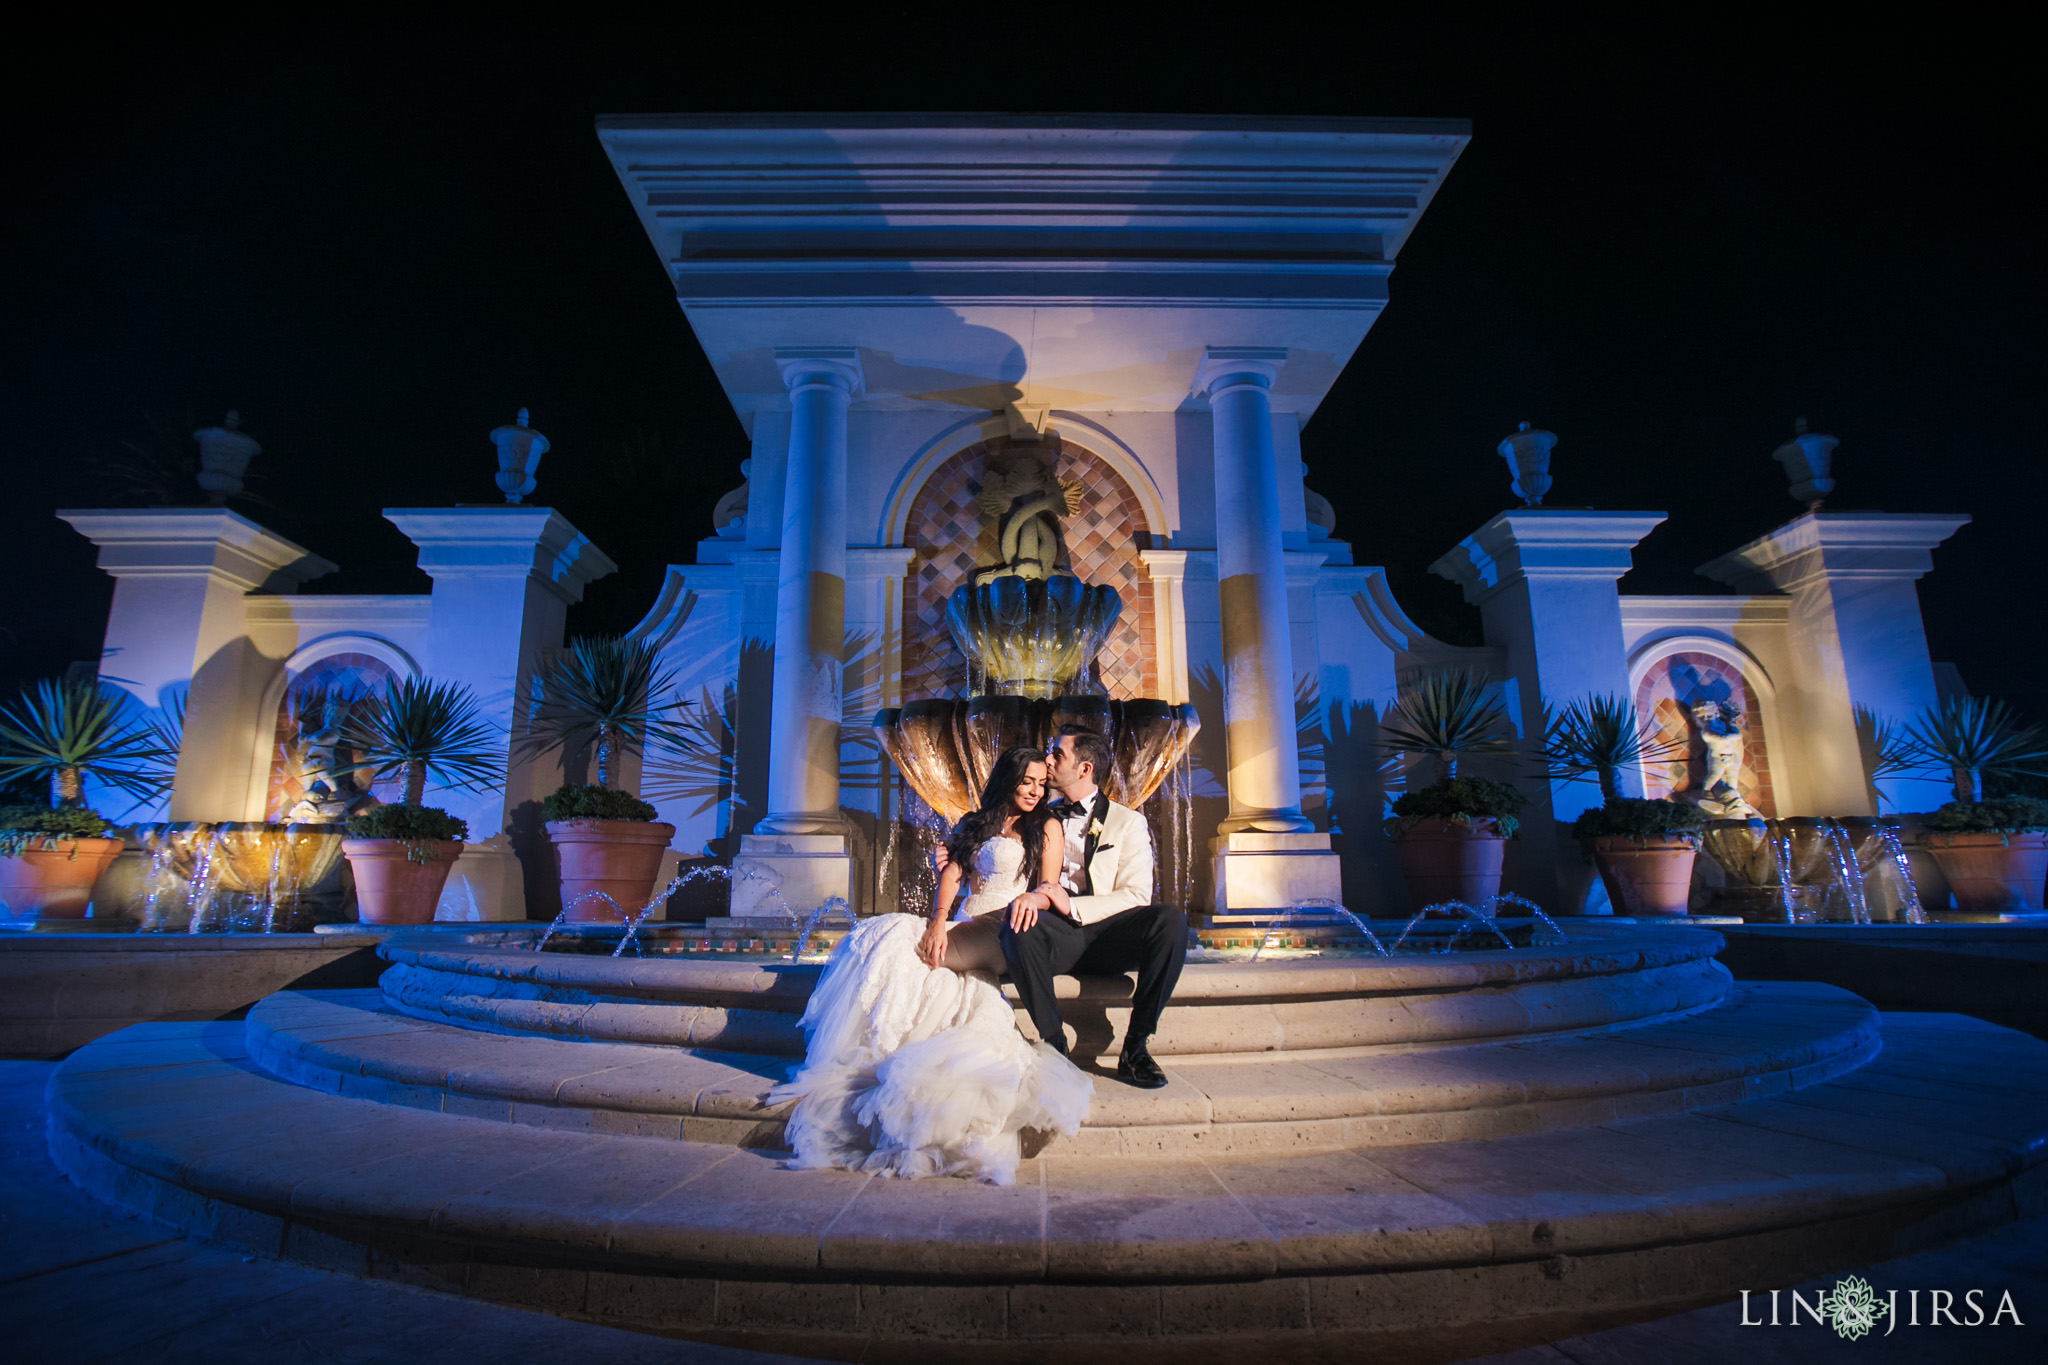 041 monarch beach resort dana point persian wedding photography